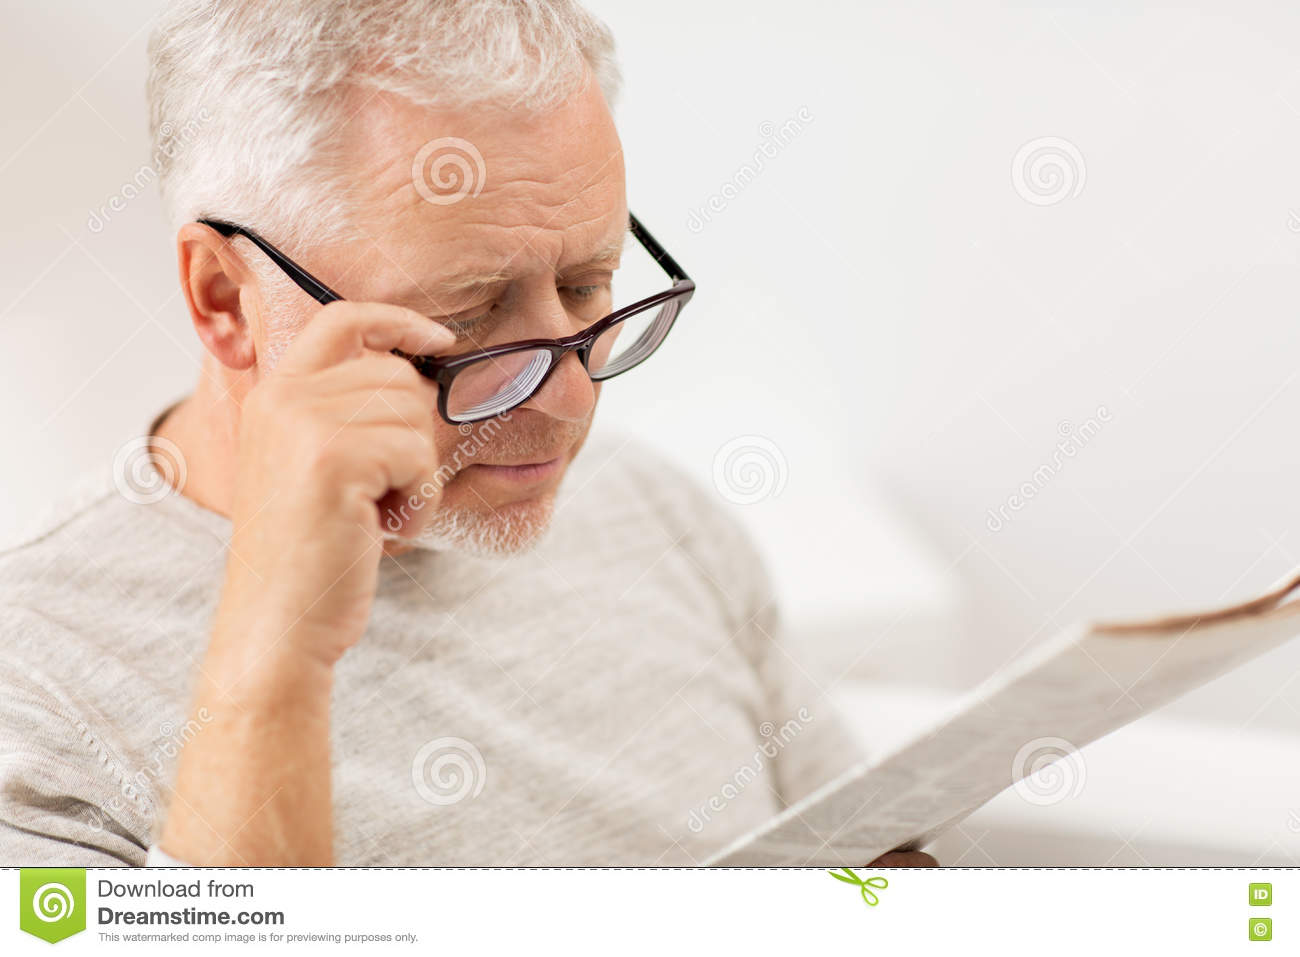 Close Up Of Old Man In Glasses Reading Newspaper Stock Image - Image of  eyesight, pensioner: 78261071